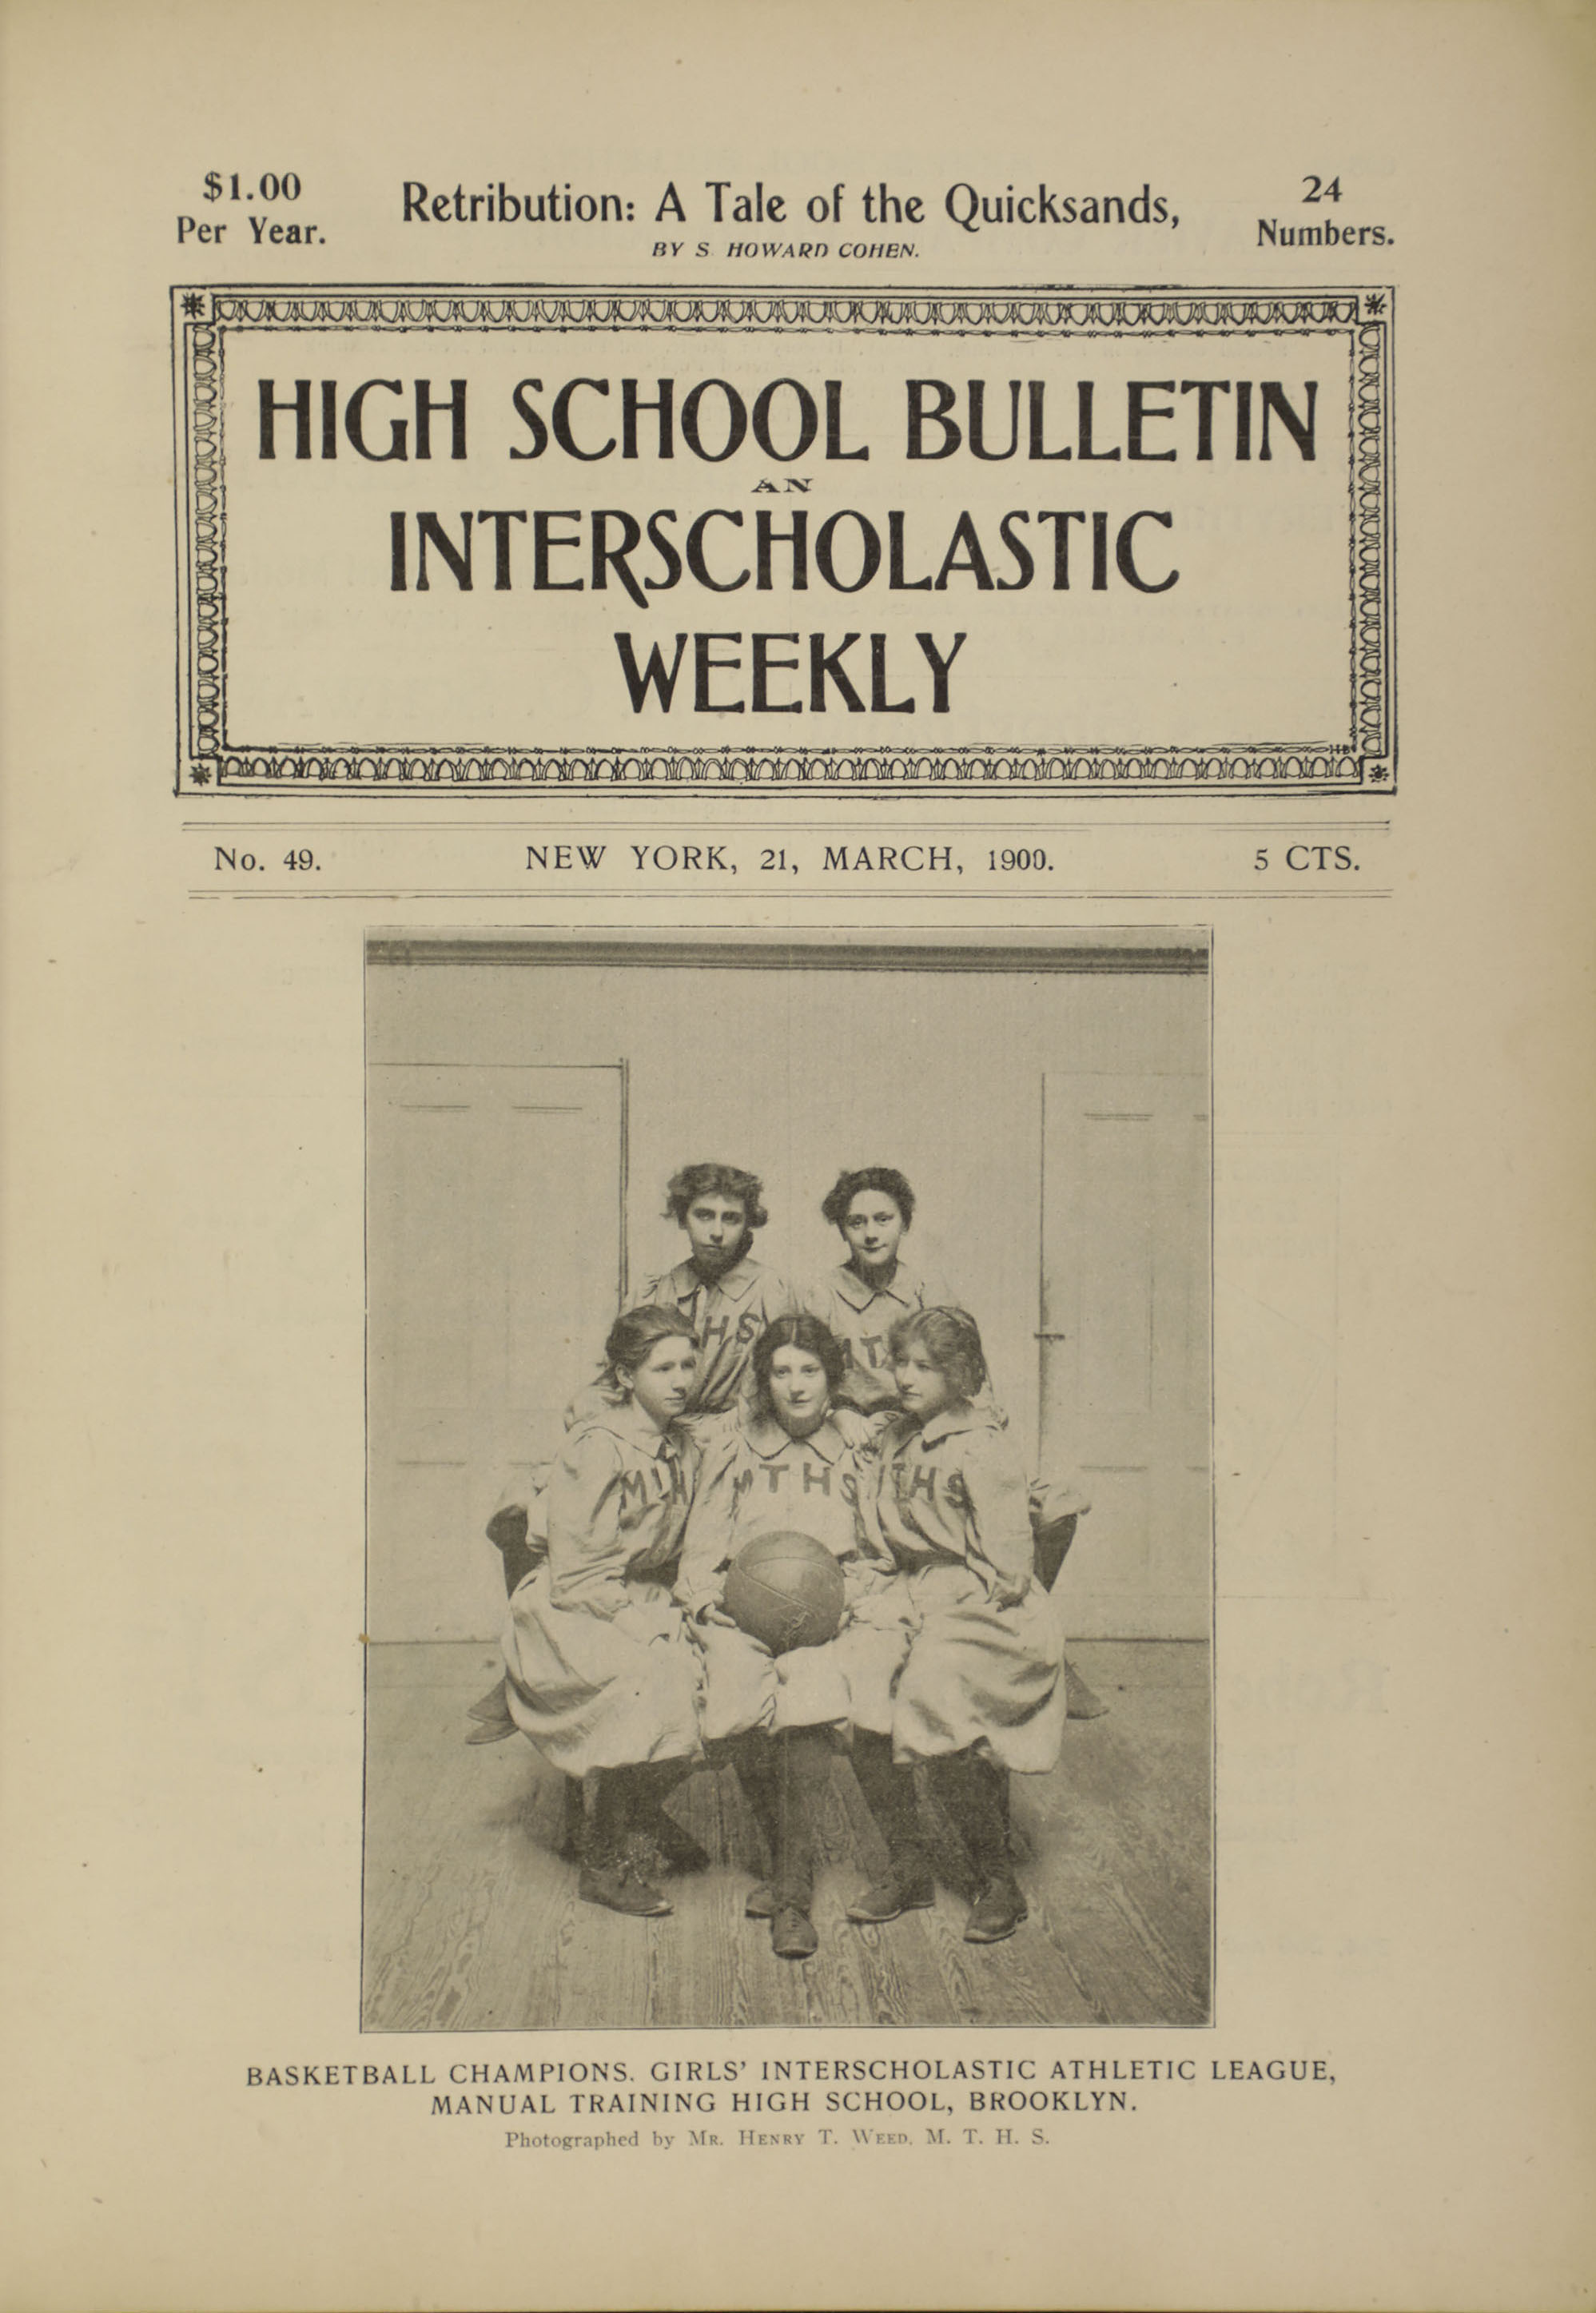 Basketball Champions, Girls' Interscholastic Athletic League, Manual Training High School, Brooklyn.  High School Bulletin , No. 49, March 1900. Board of Education Collection, NYC Municipal Archives.